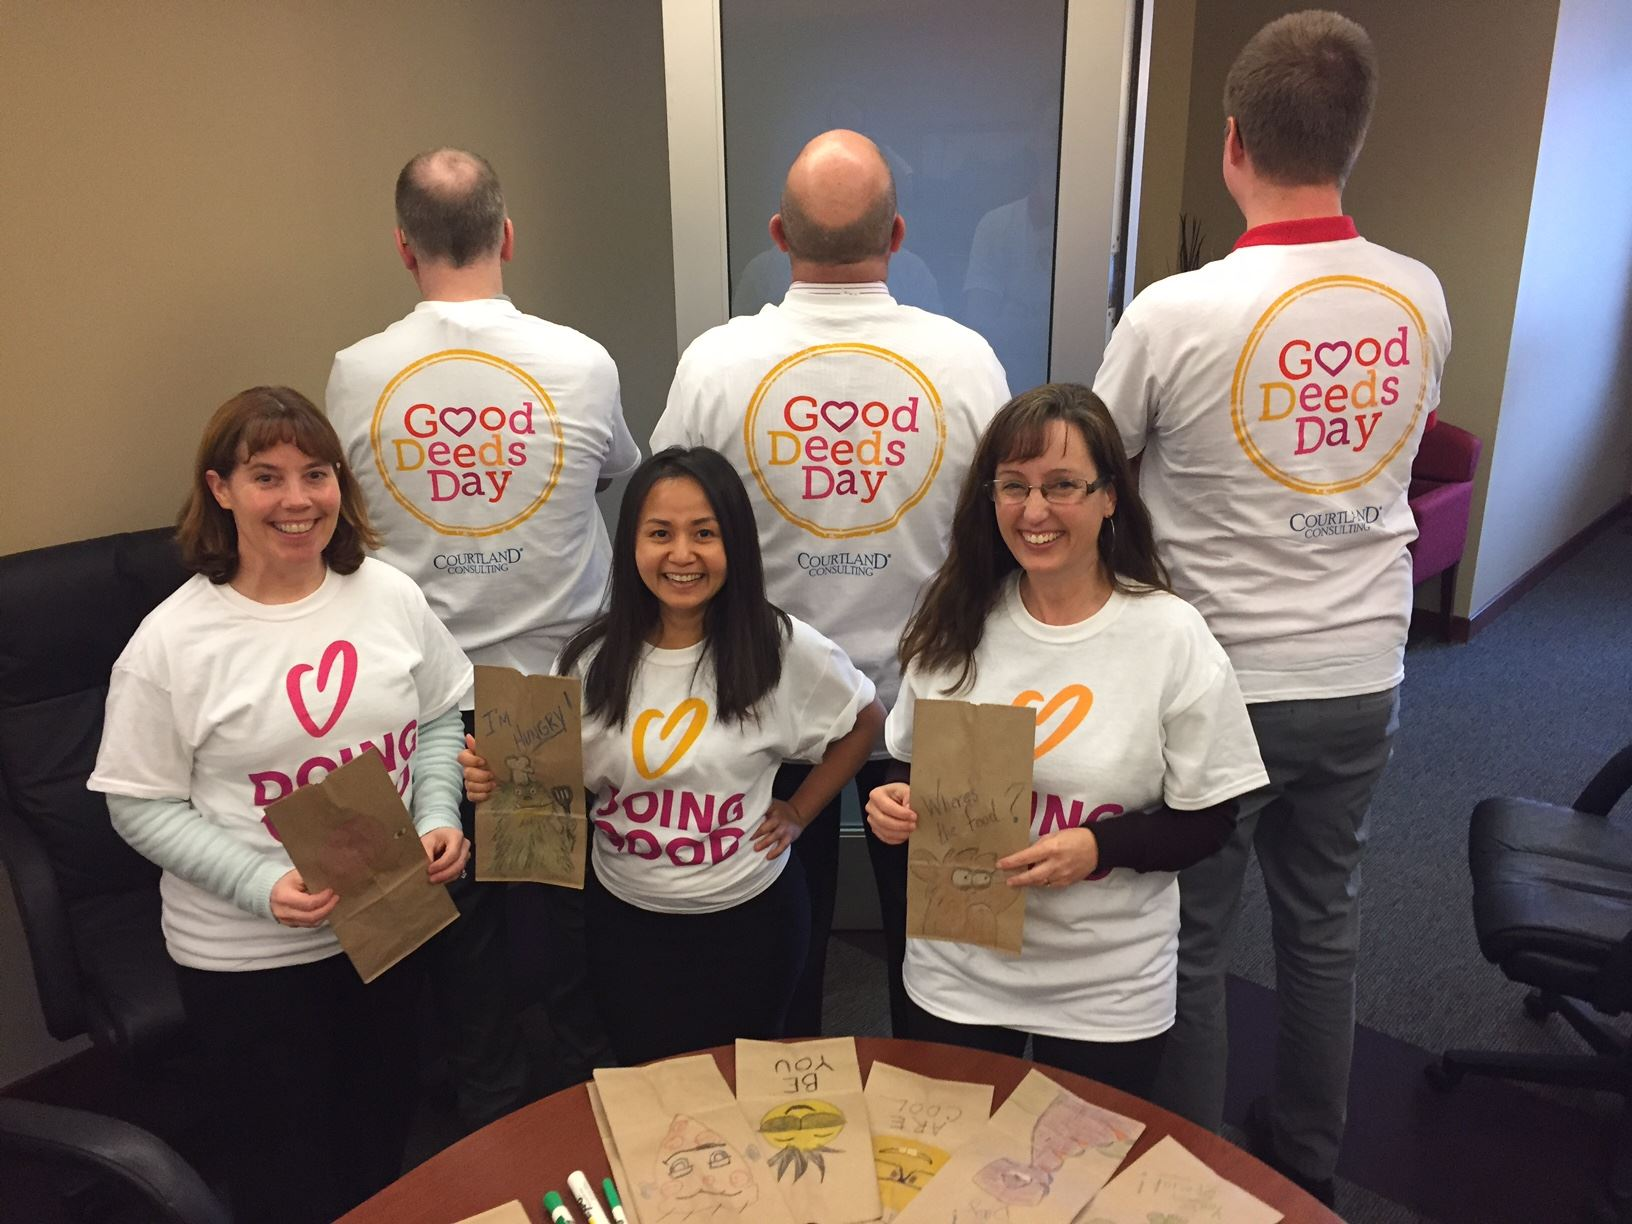 Courtland Consulting Good Deeds Day